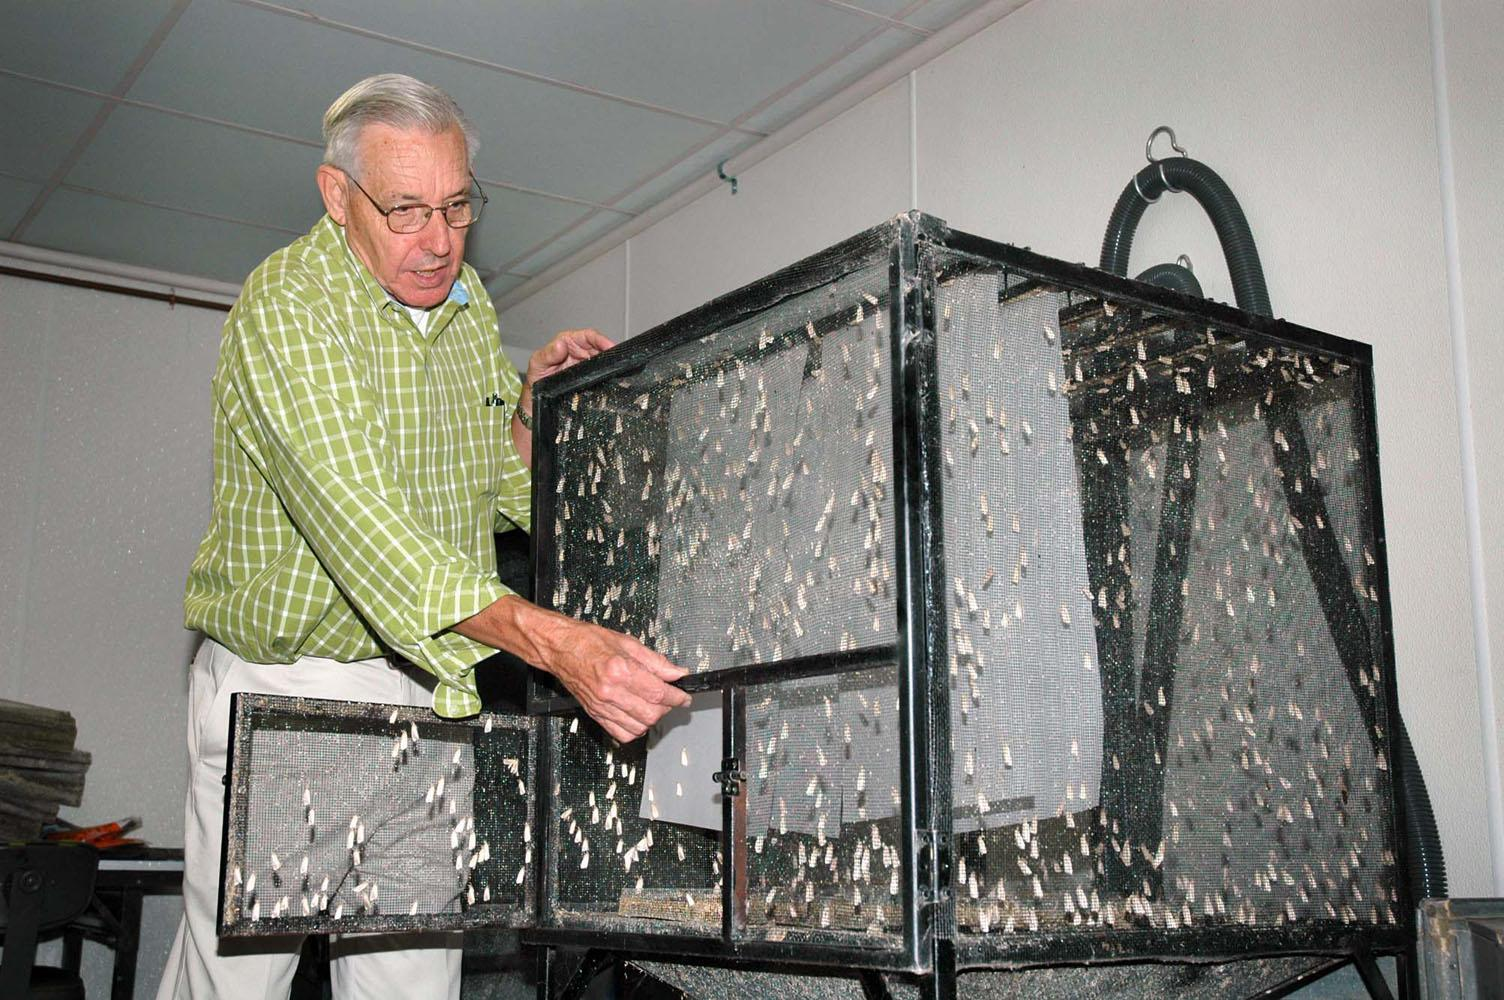 Frank Davis displays one of the large cages developed for holding adult southwestern corn borer moths at the U.S. Department of Agriculture's Agricultural Research Service facility in Starkville. (Photo by Linda Breazeale)